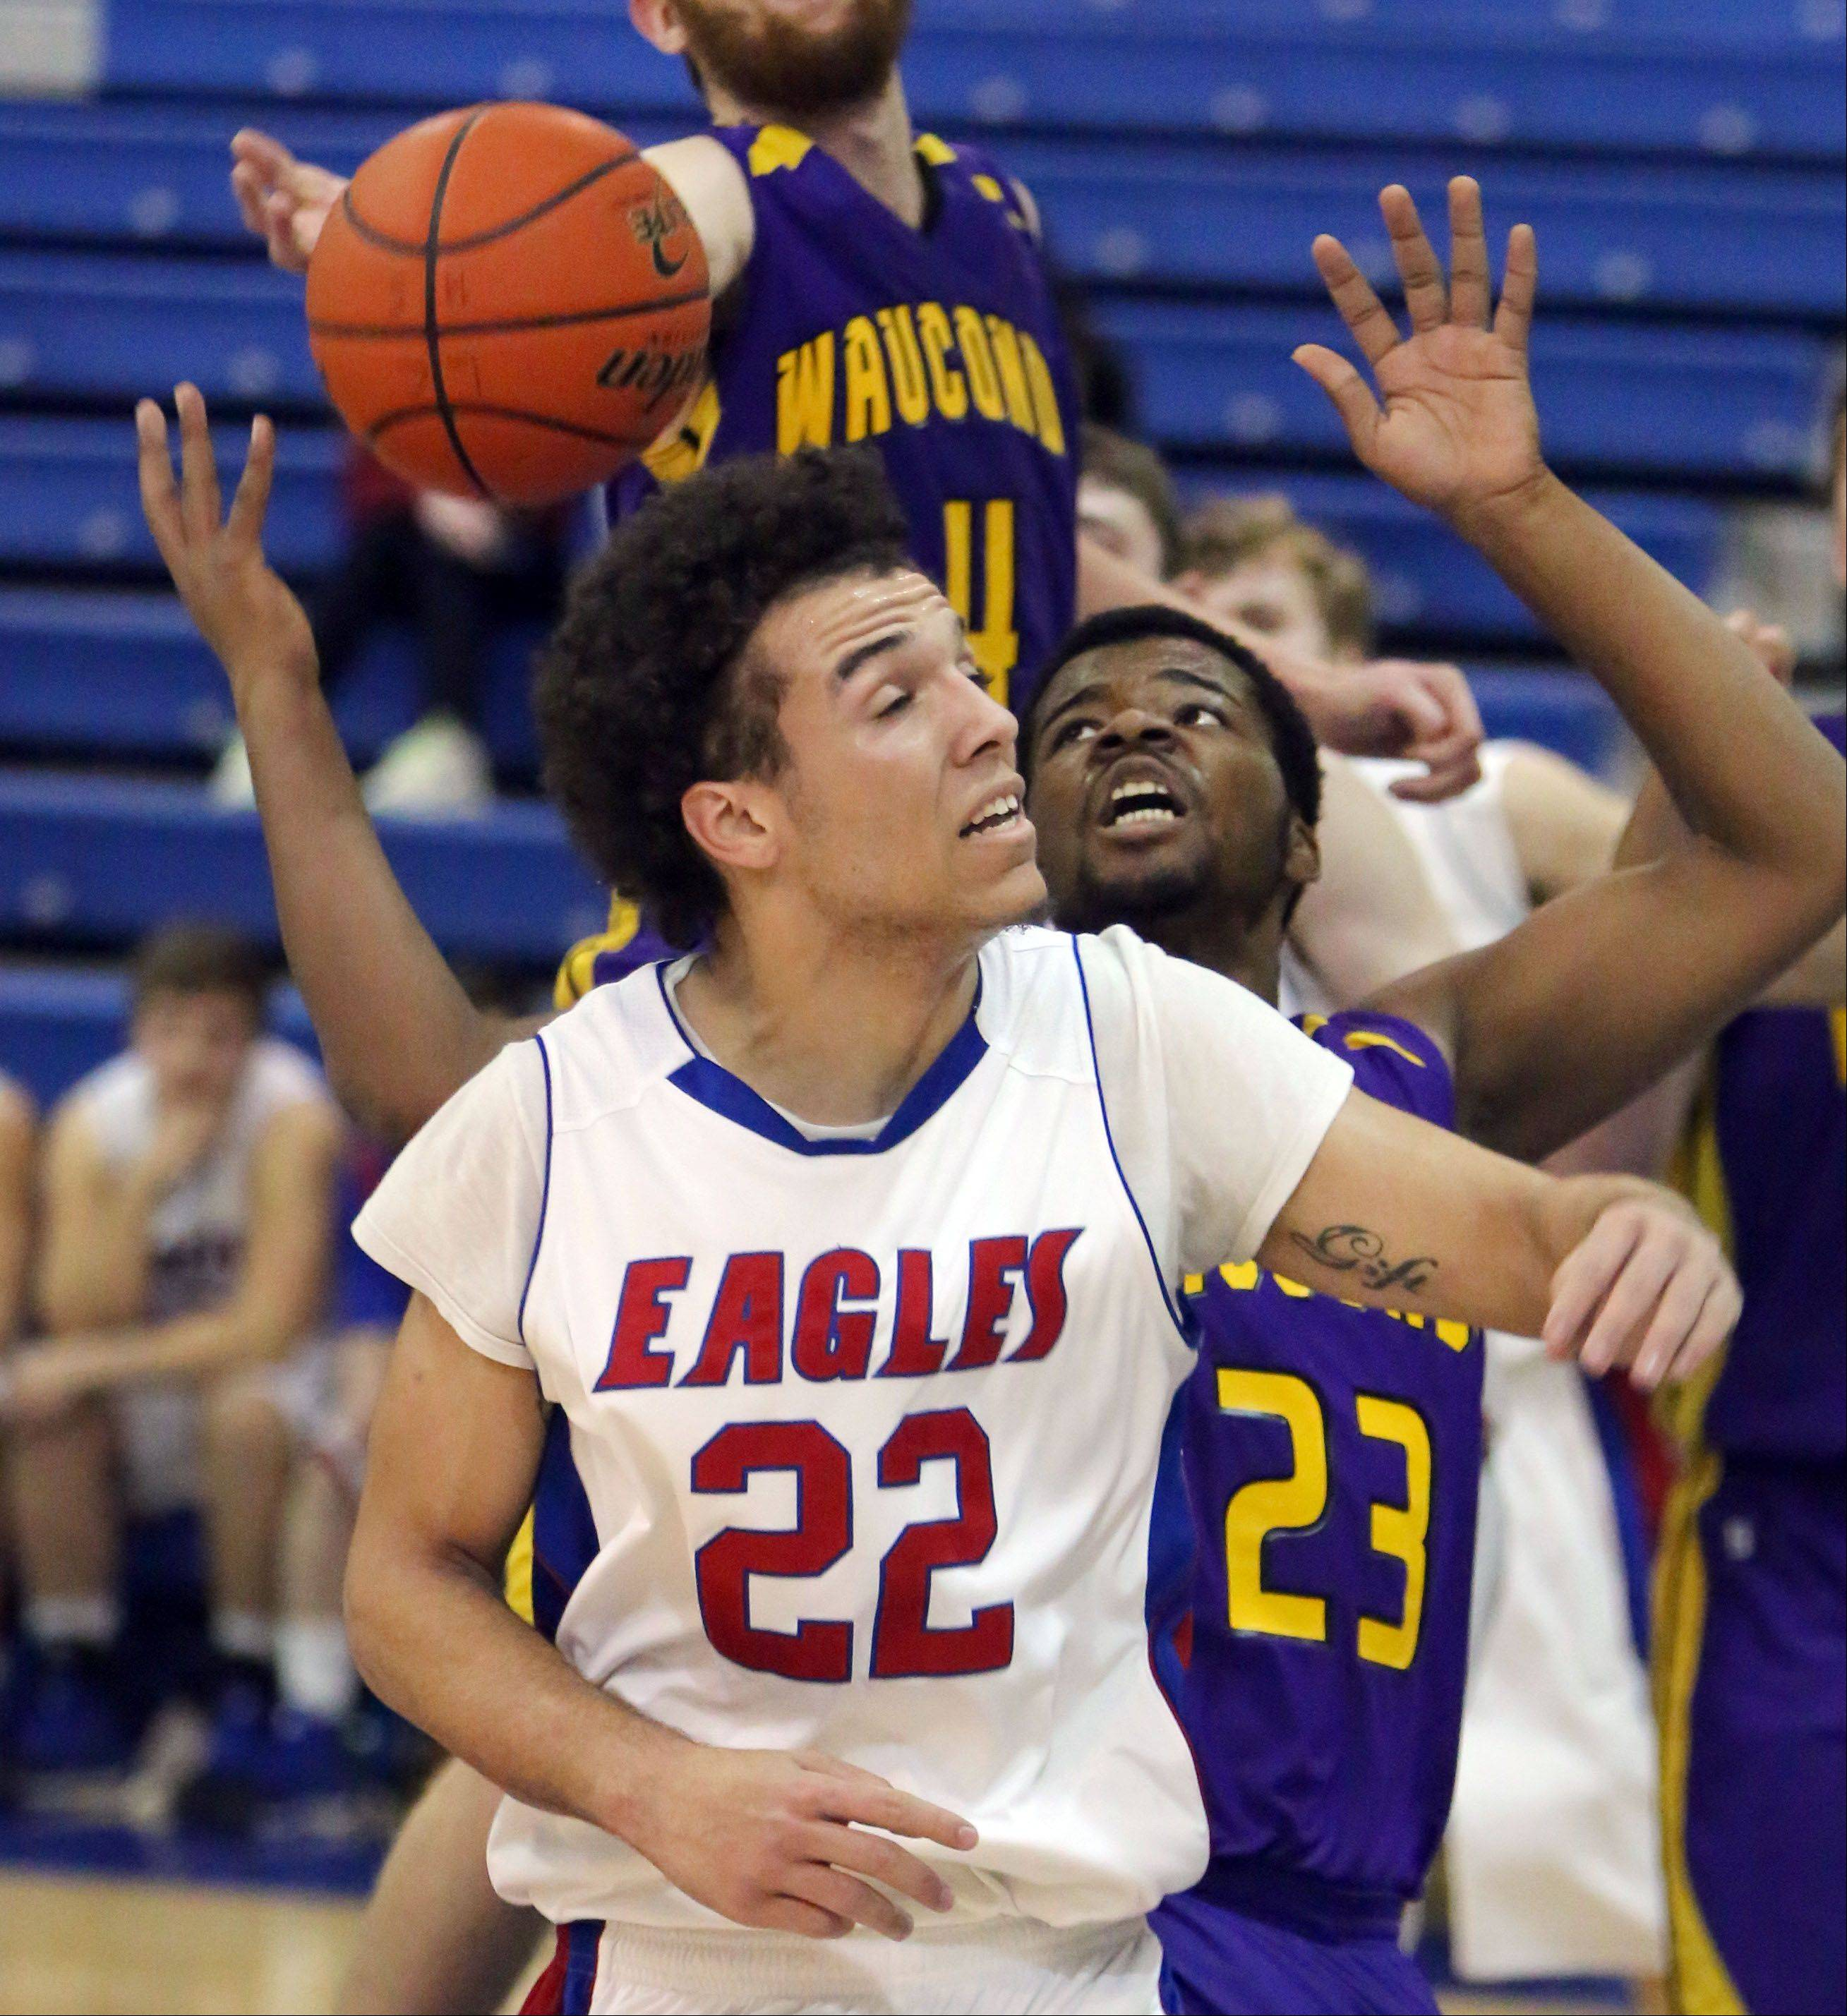 Lakes' Tramone Hudson, left, and Wauconda's Dion Head try to track down a rebound Tuesday night at Lakes.